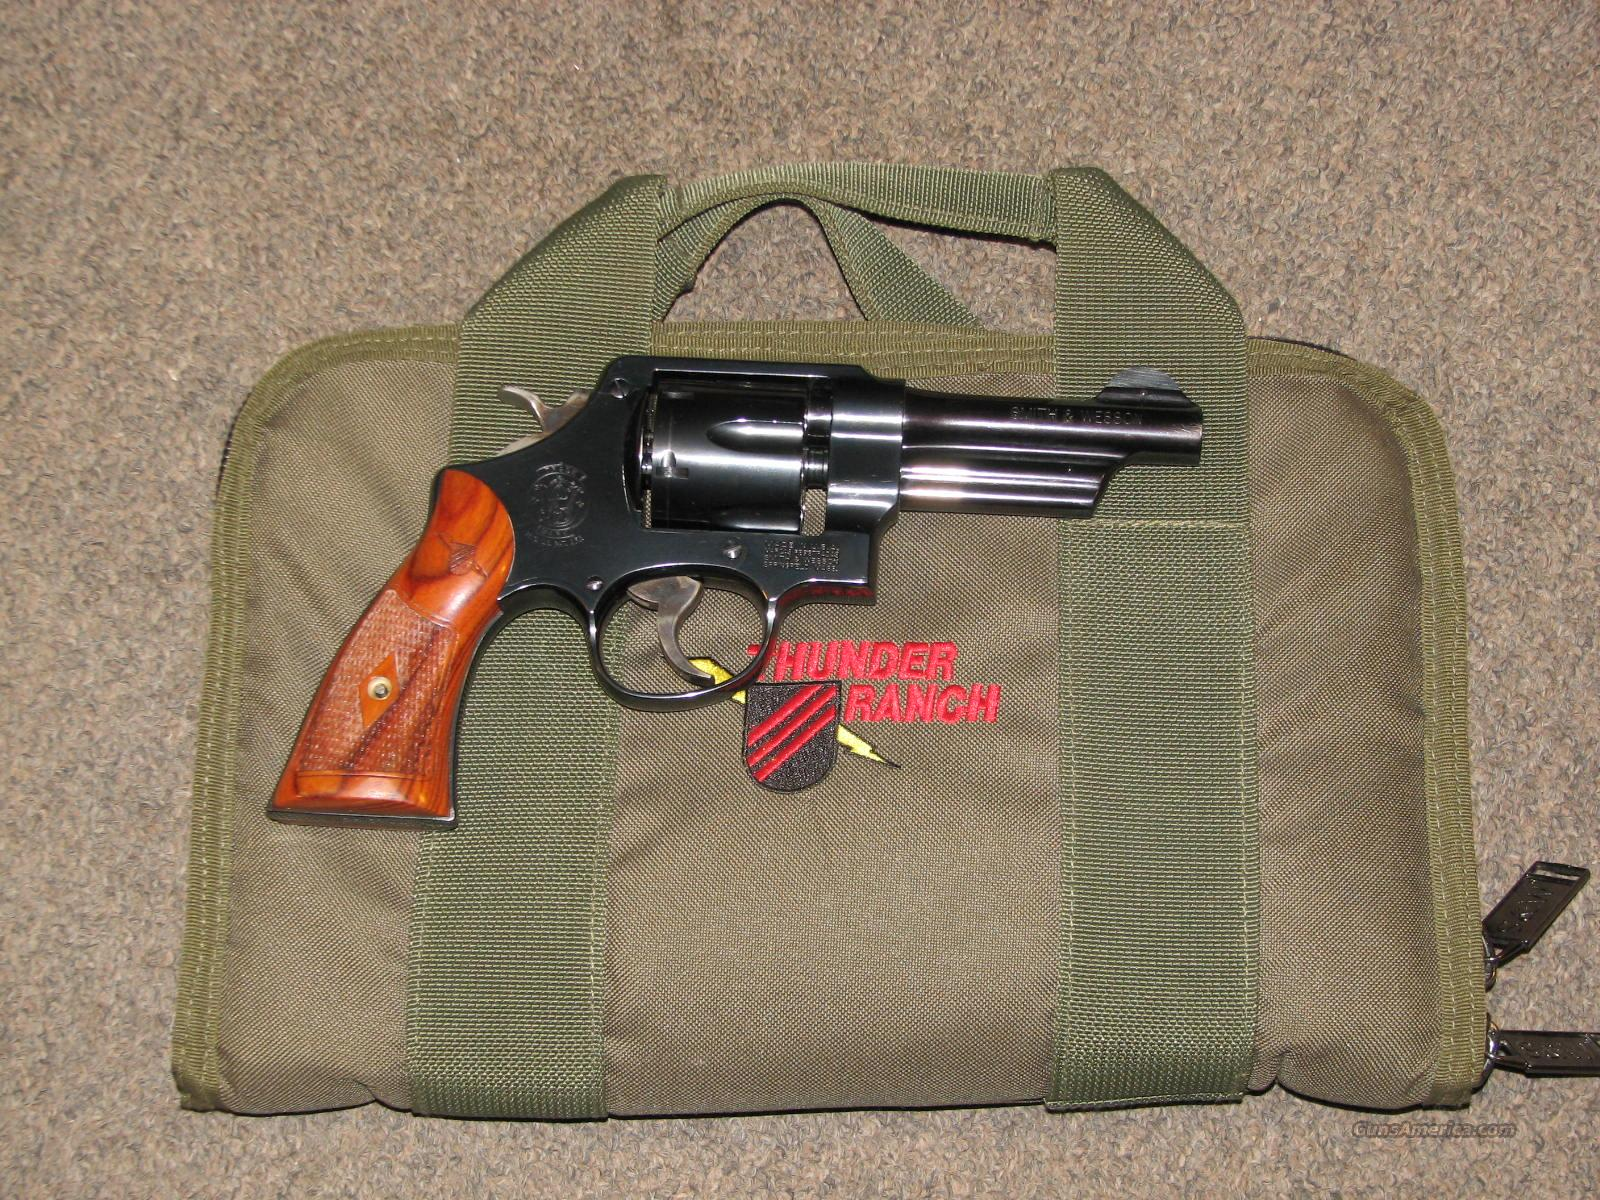 SMITH & WESSON 22-4 THUNDER RANCH .45 ACP  Guns > Pistols > Smith & Wesson Revolvers > Full Frame Revolver